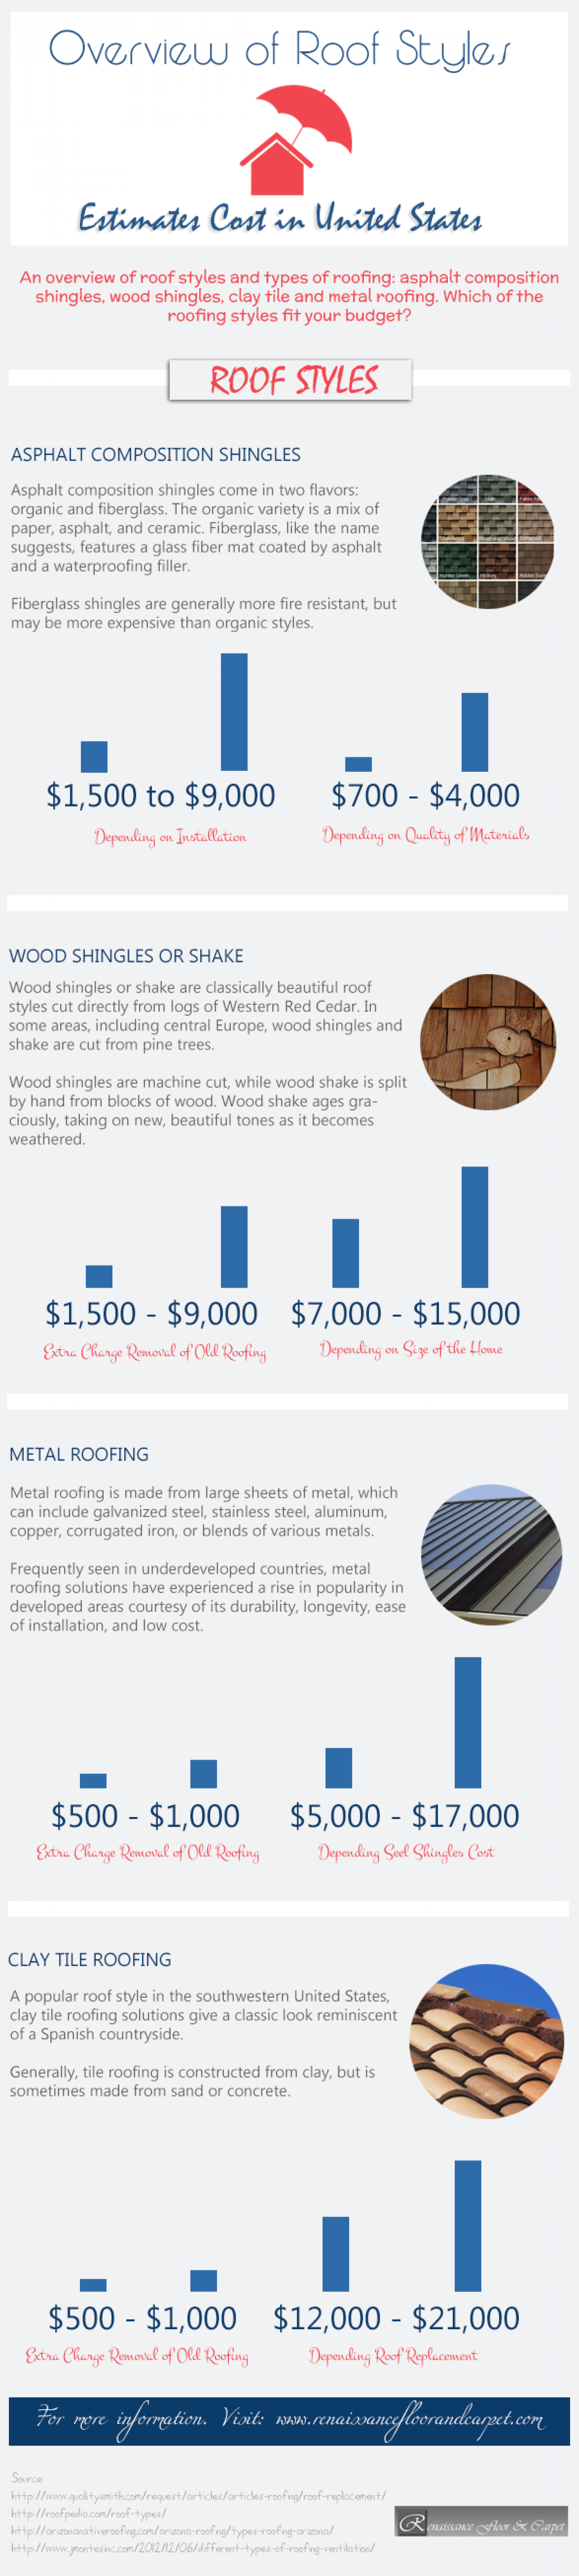 Overview of Roof Styles: Estimates Cost in United States Infographic